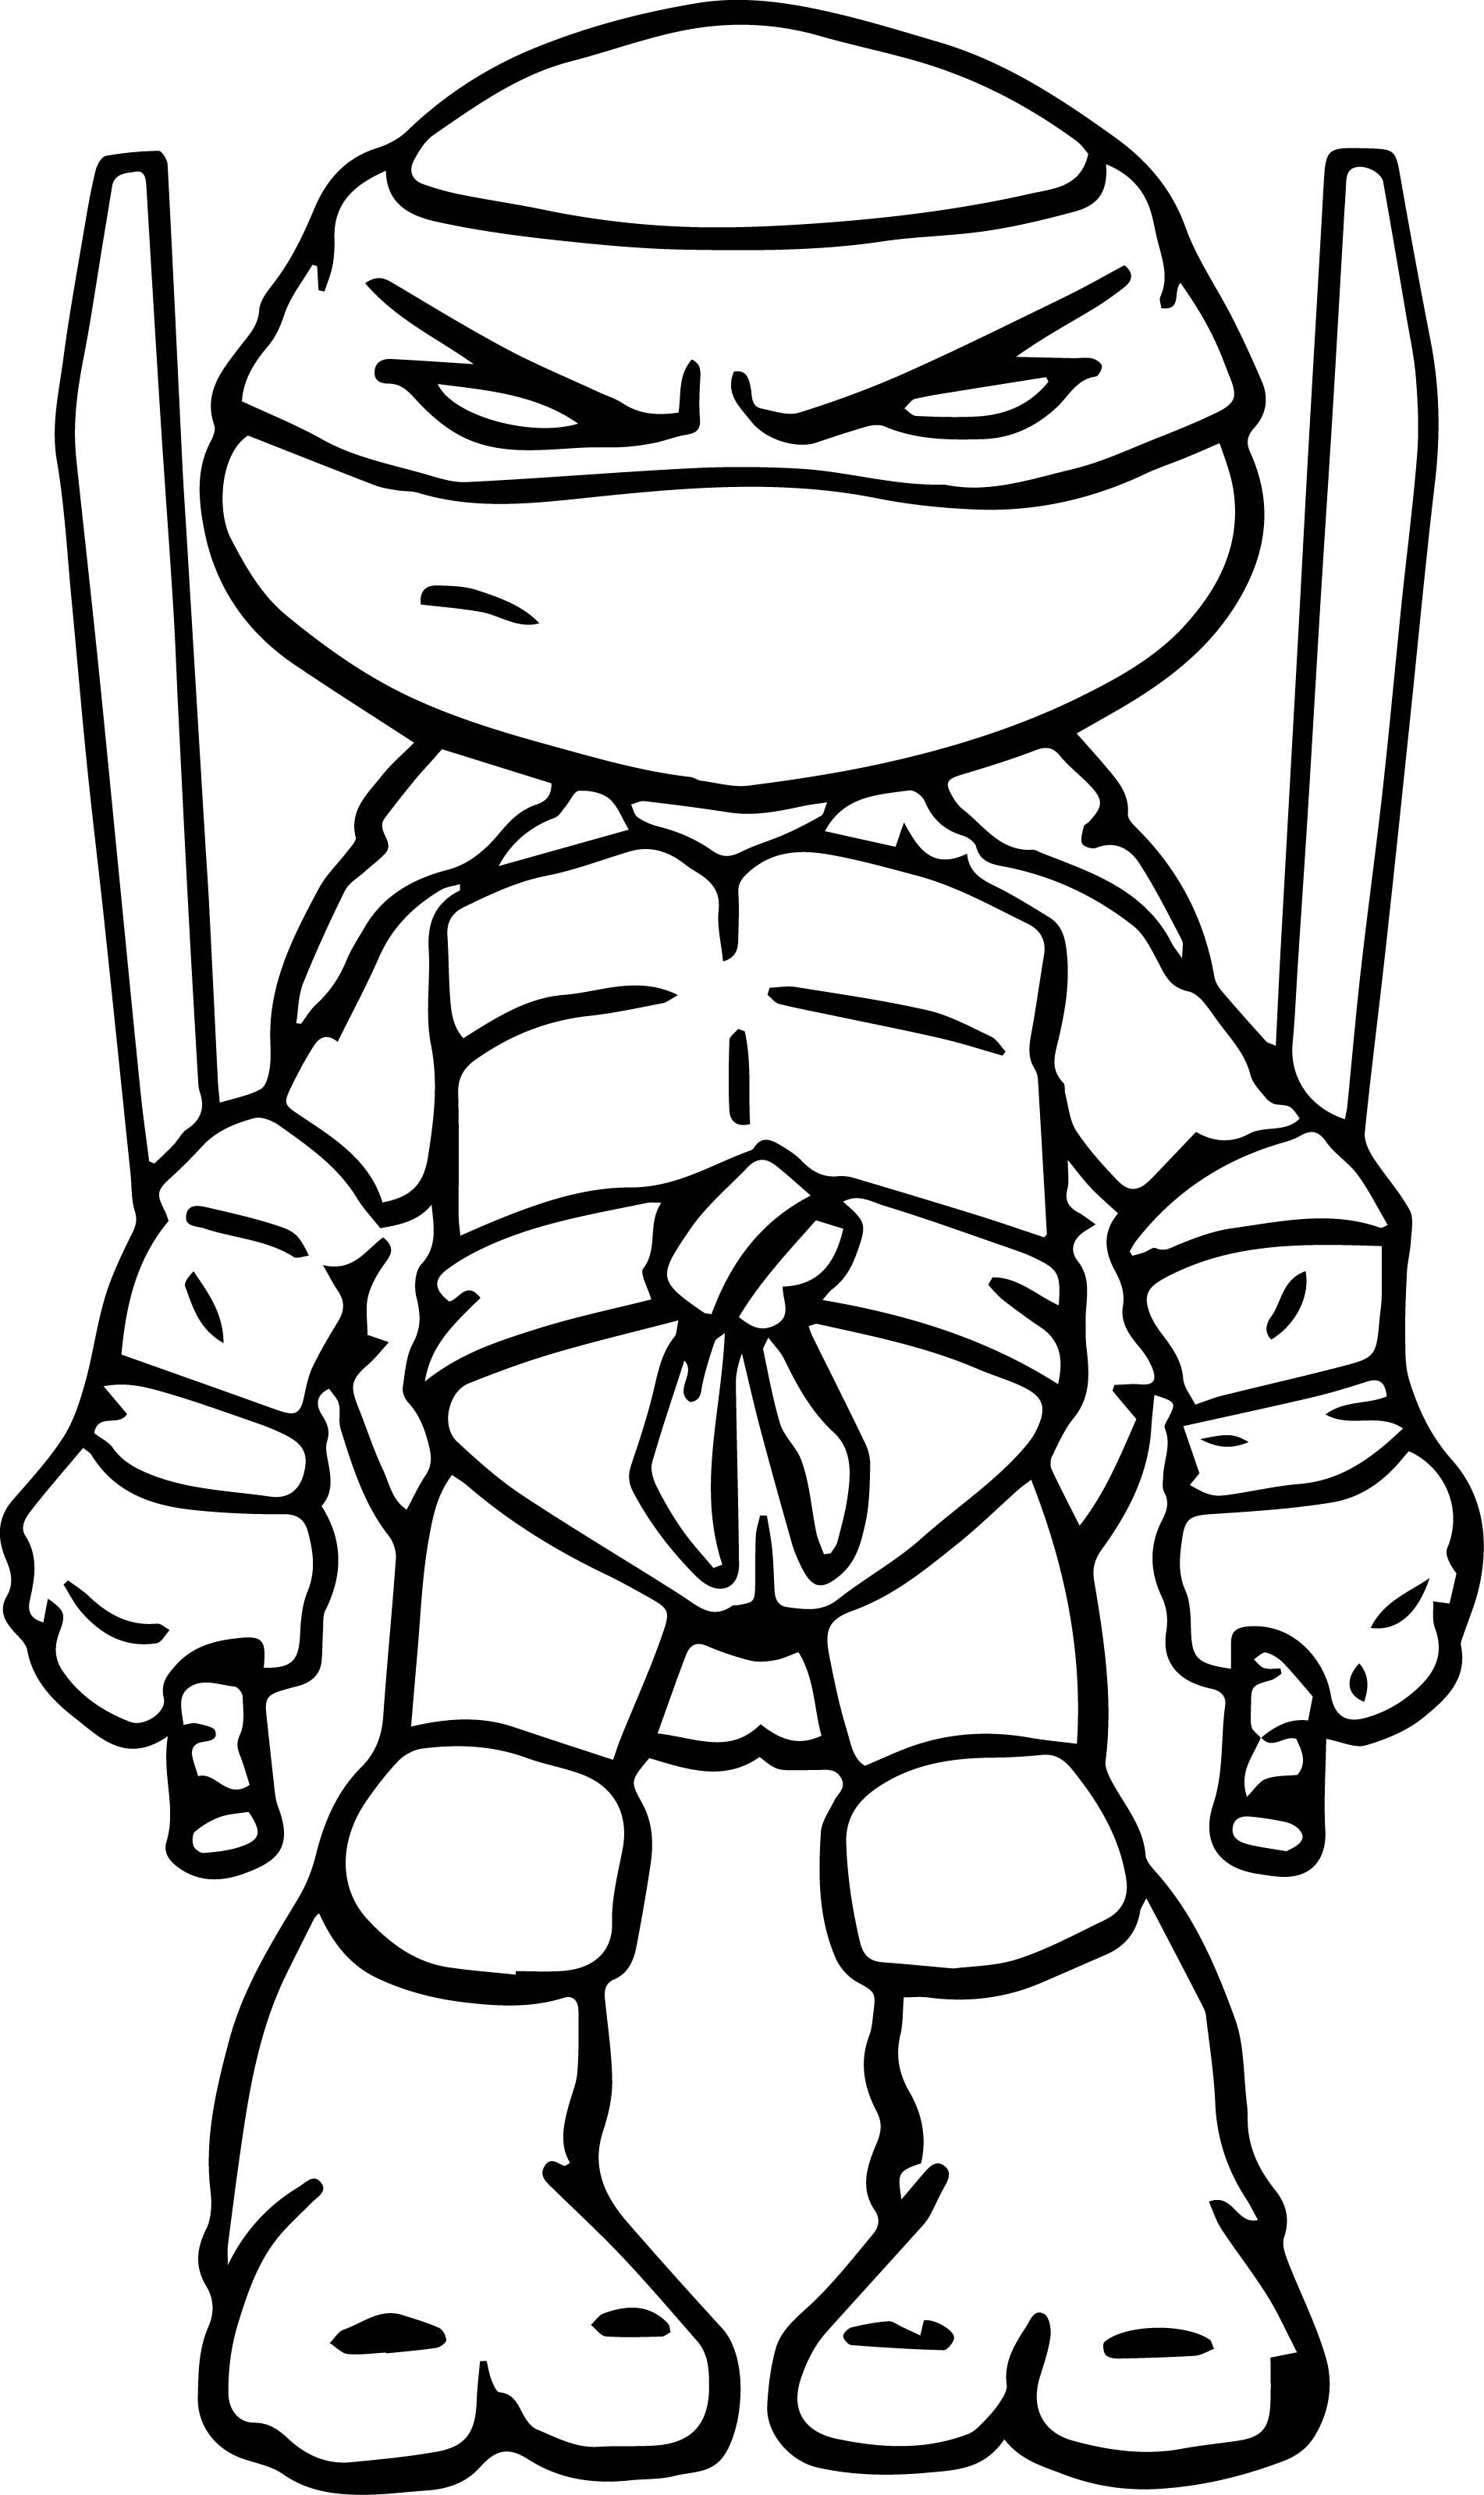 Coloring Pages For Teenage Mutant Ninja Turtles : Ninja turtles art coloring page tmnt party pinterest